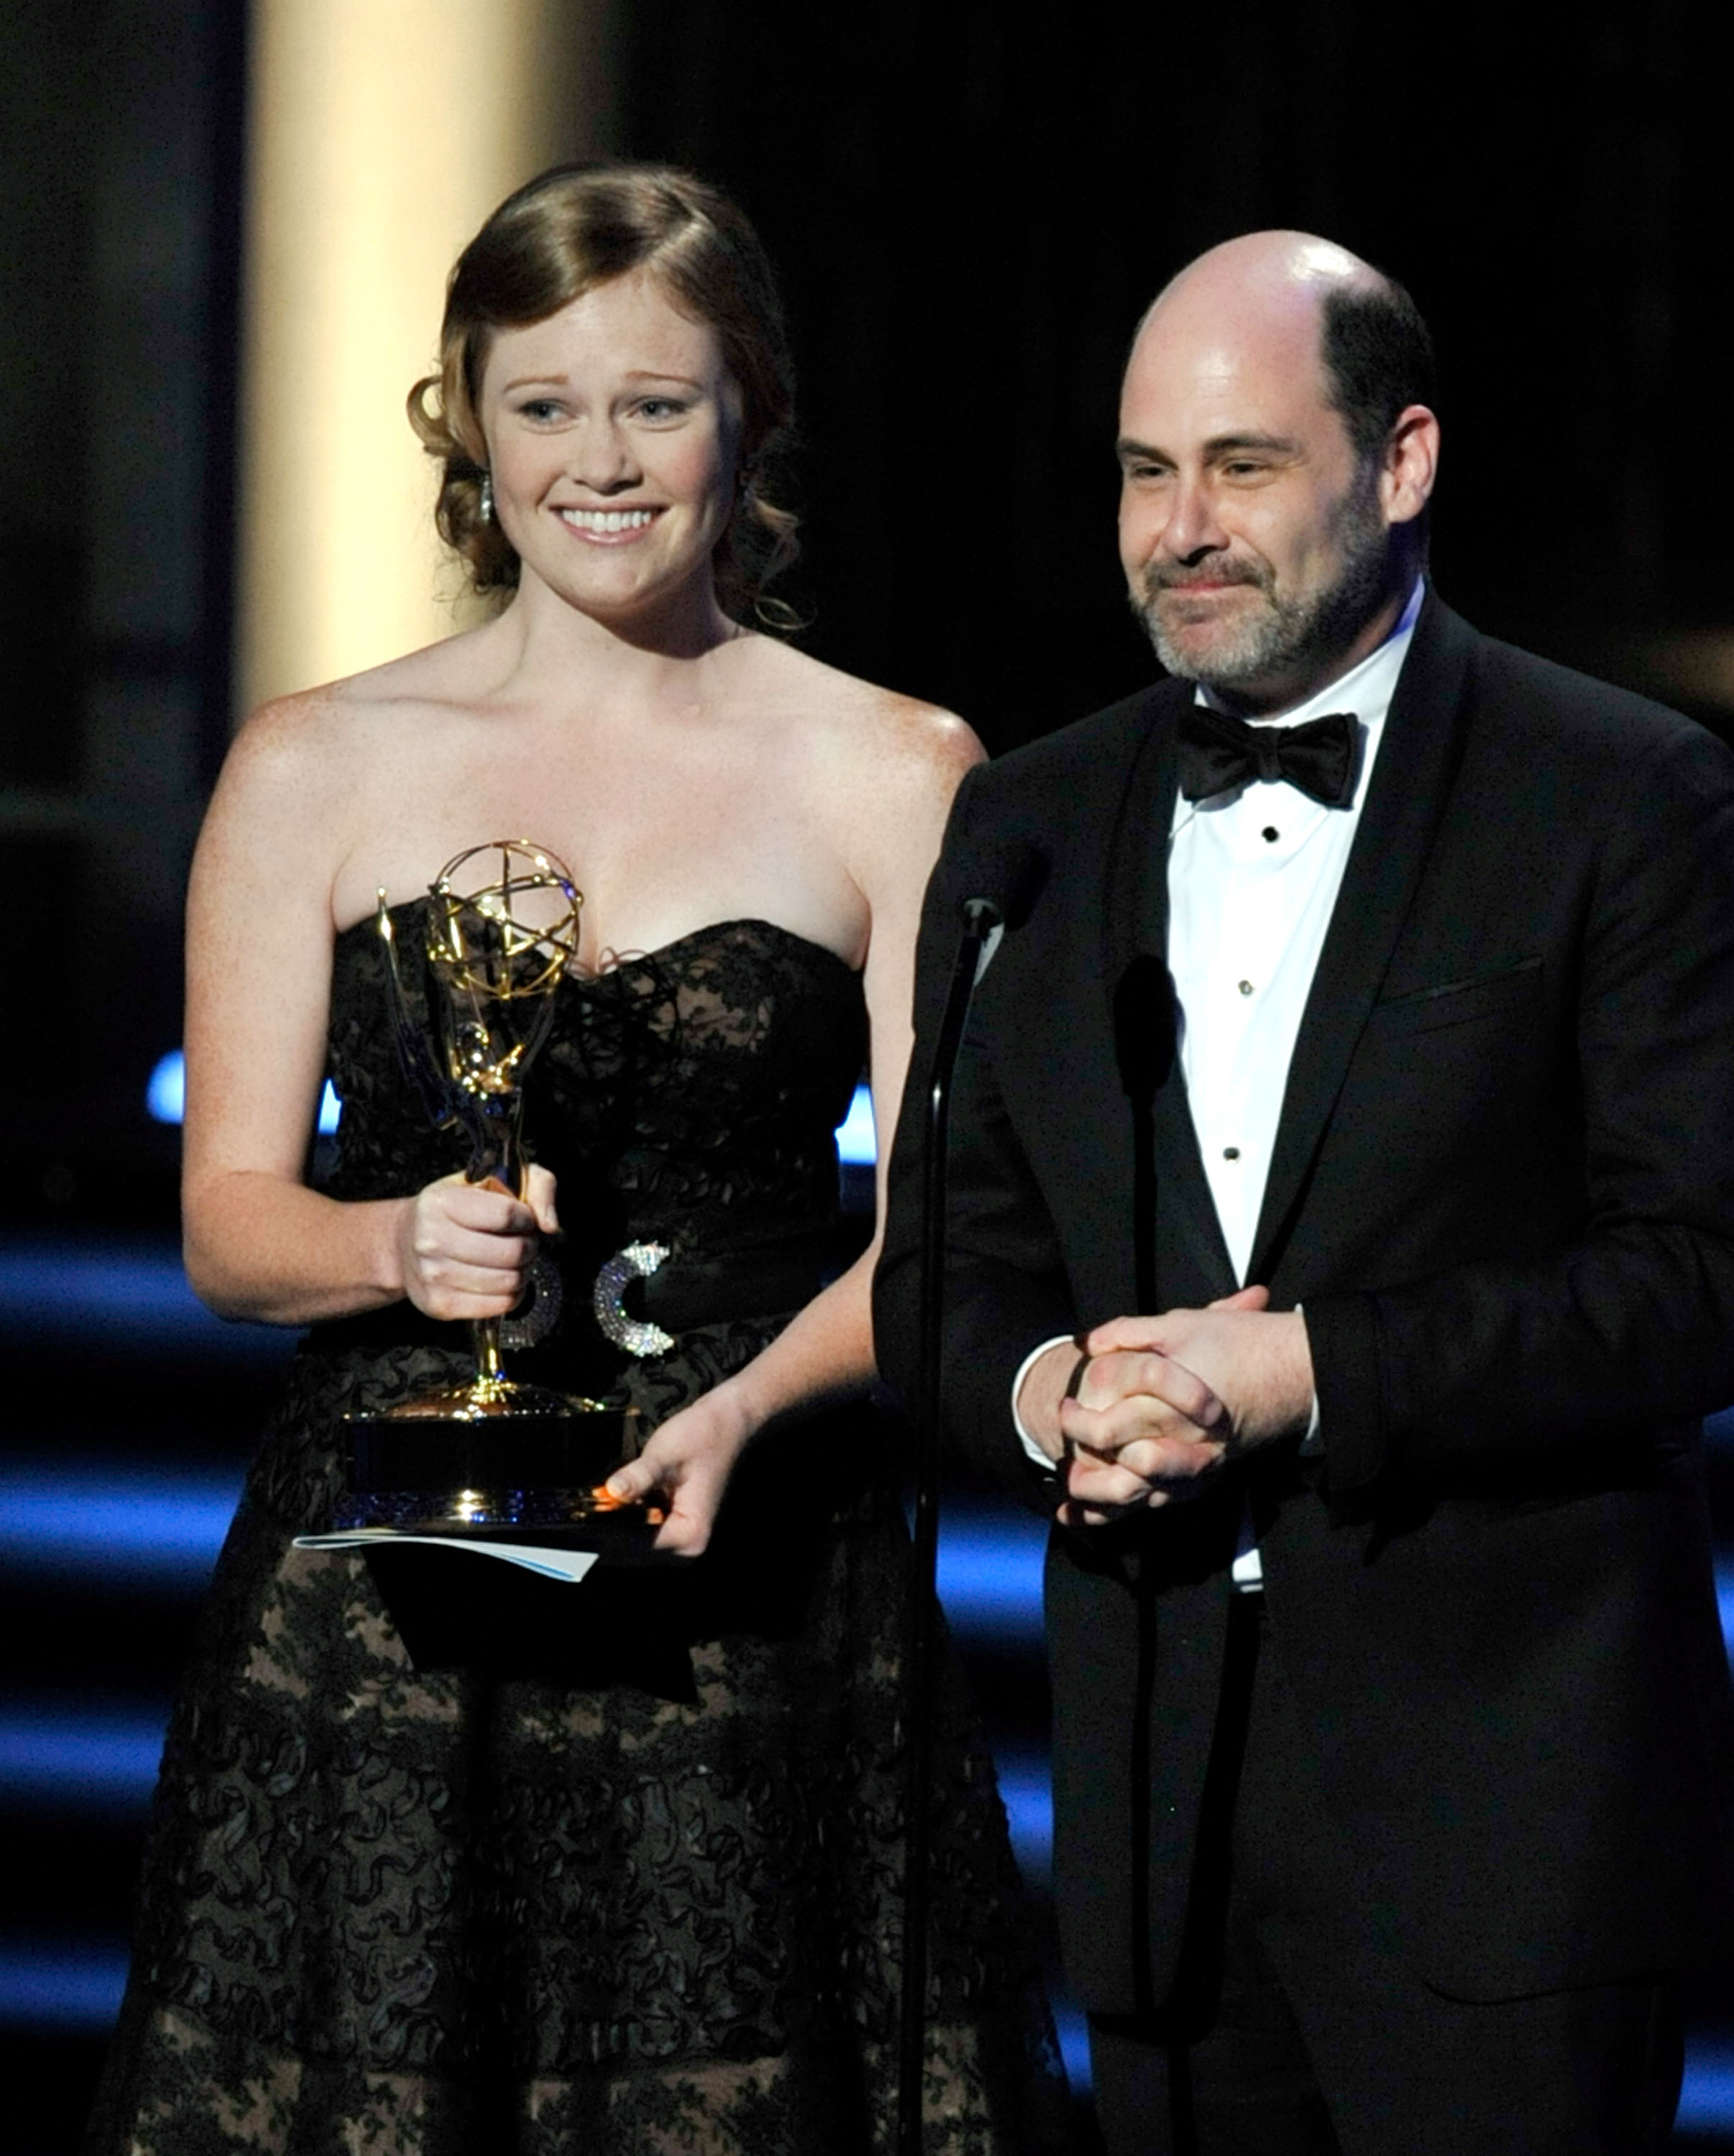 Writers Kater Gordon and Matthew Weiner accept the Outstanding Writing for a Comedy Series award for 'Mad Men' onstage during the 61st Primetime Emmy Awards held at the Nokia Theatre on September 20, 2009, in Los Angeles, California. (Ge